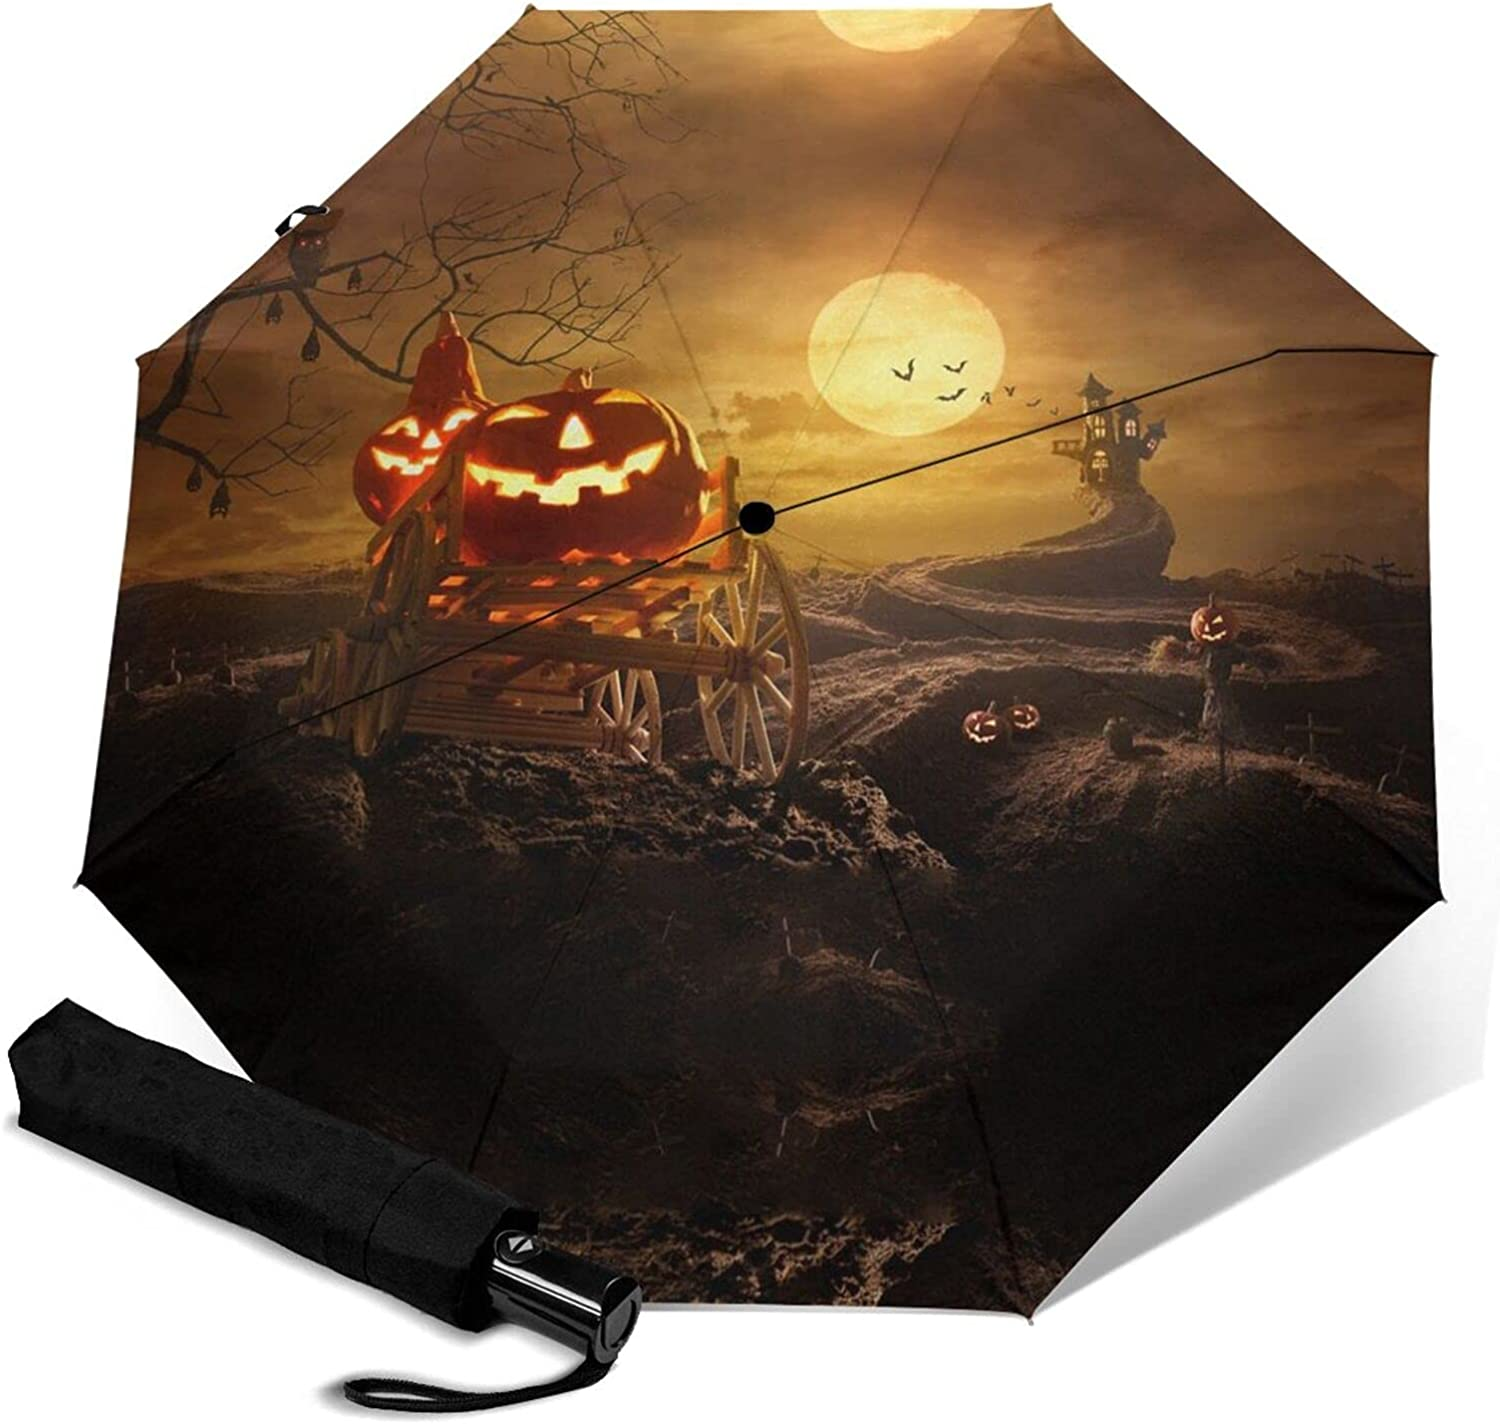 Halloween Pumpkin Print Automatic Special sale item Clearance SALE! Limited time! Waterp Umbrella Three-Folding